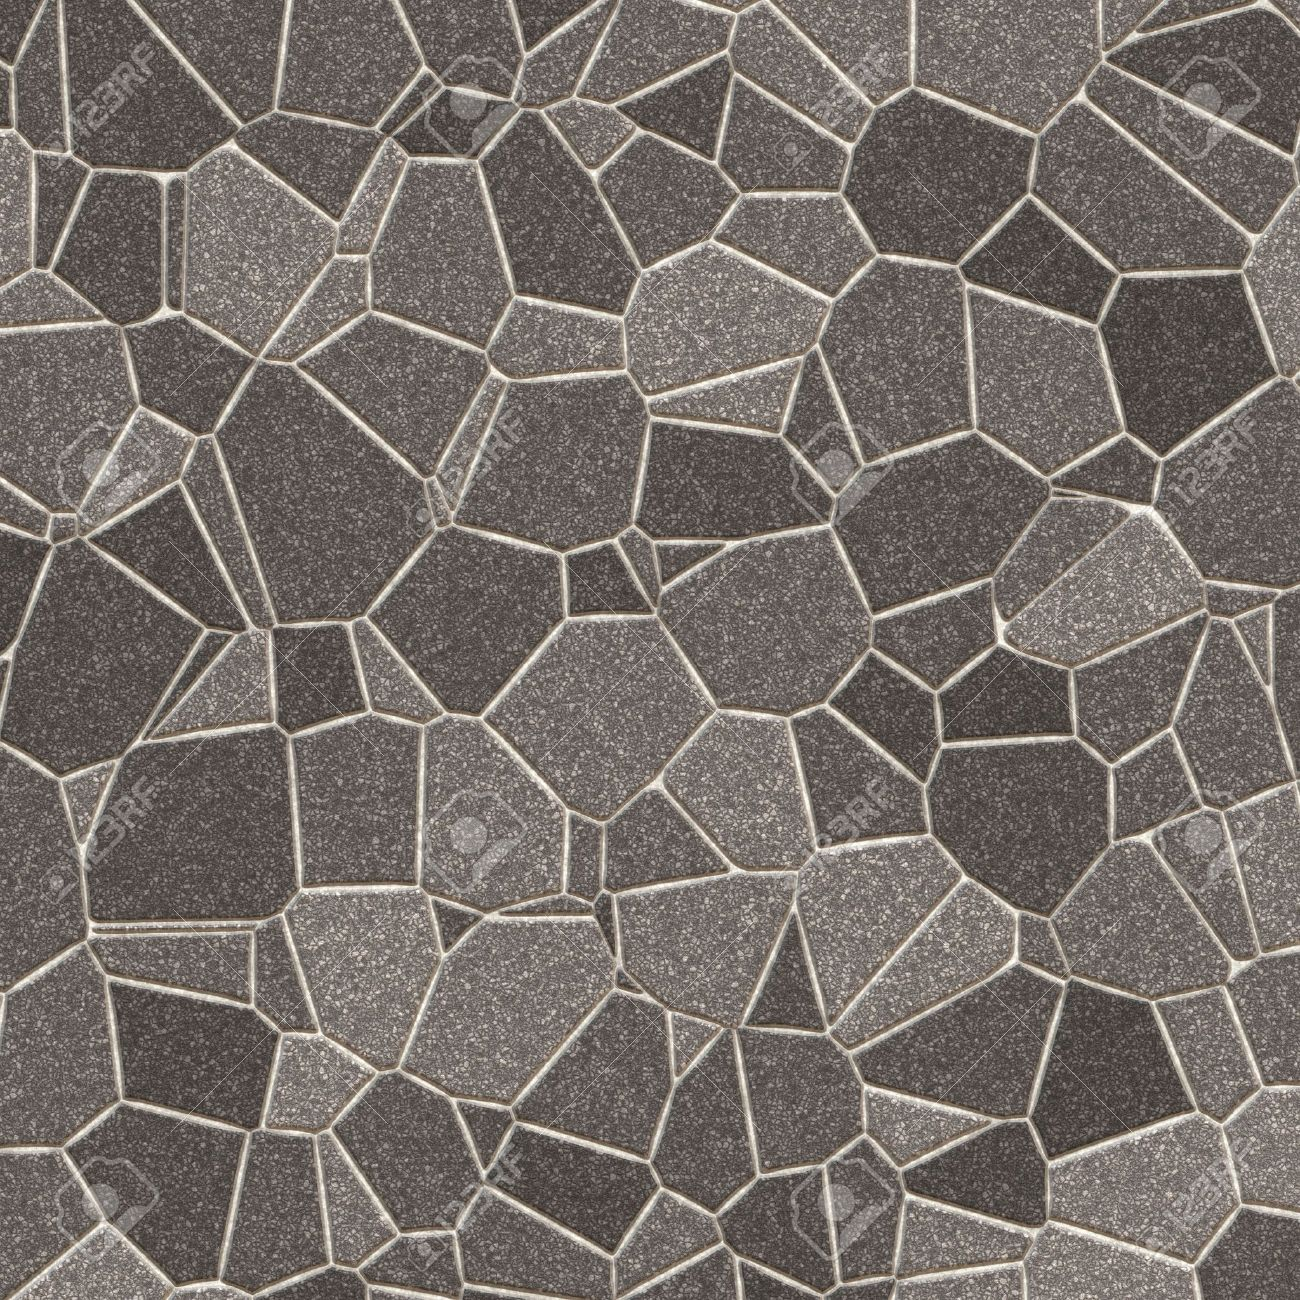 stone flooring texture. Stone Background Flooring Texture A